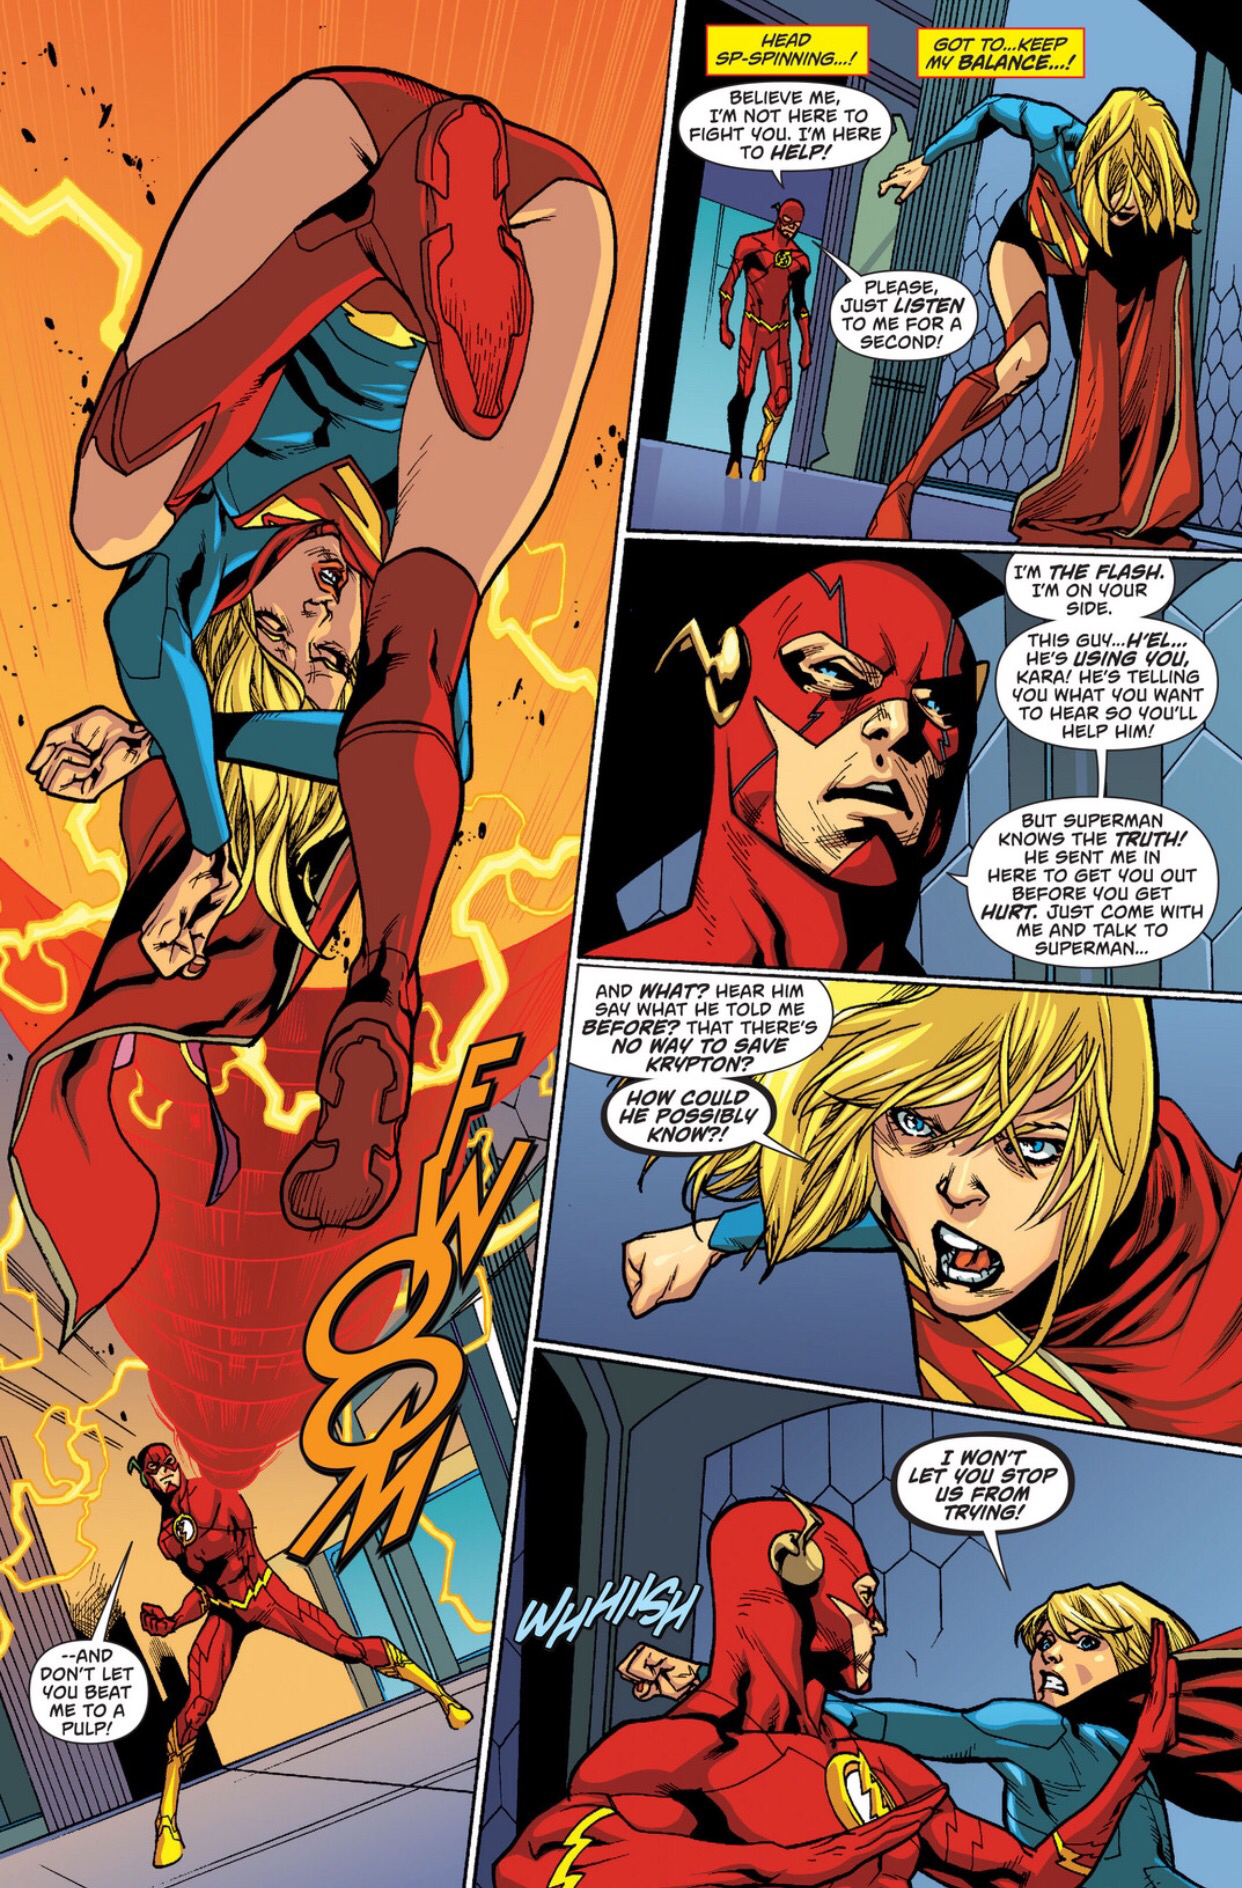 the flash vs. supergirl